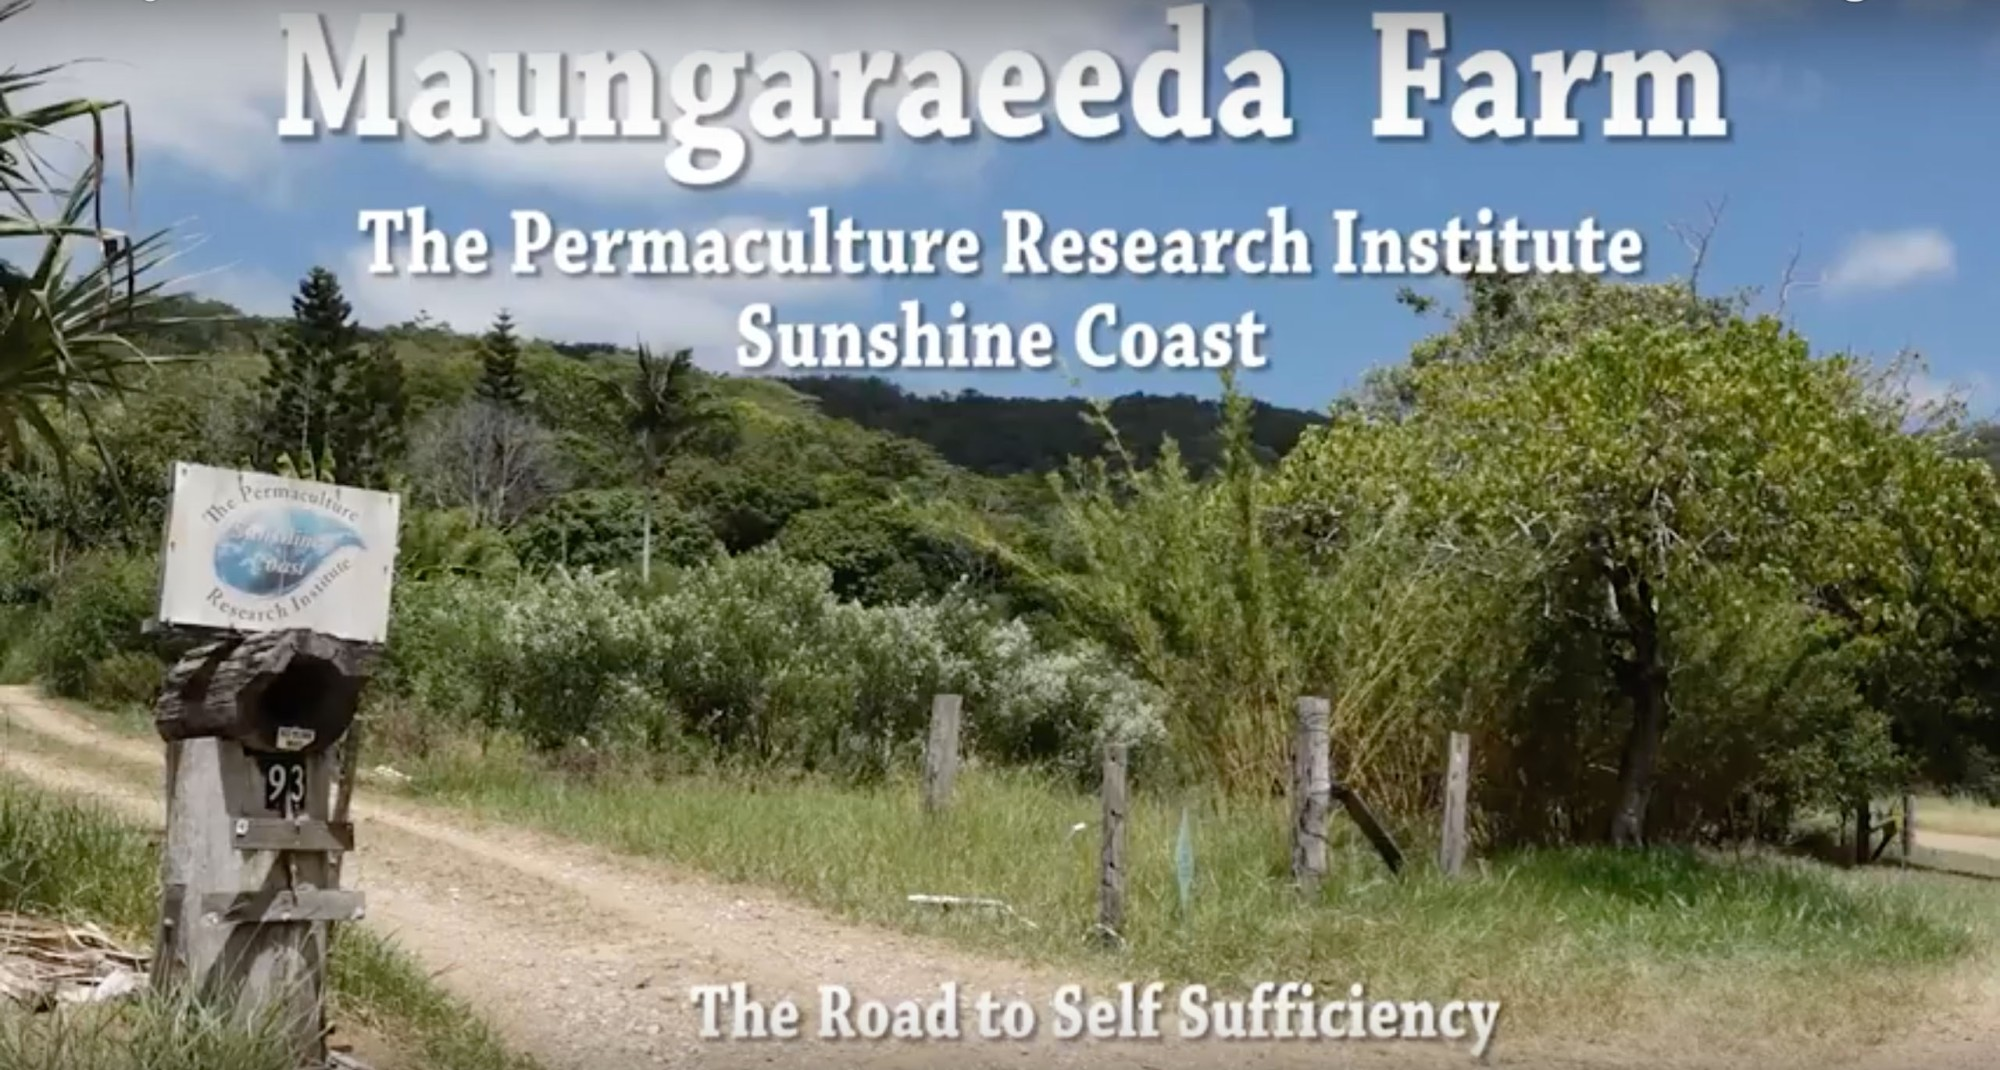 Maungaraeeda Farm, the road to self sufficiency with Tom Kendall and Zaia